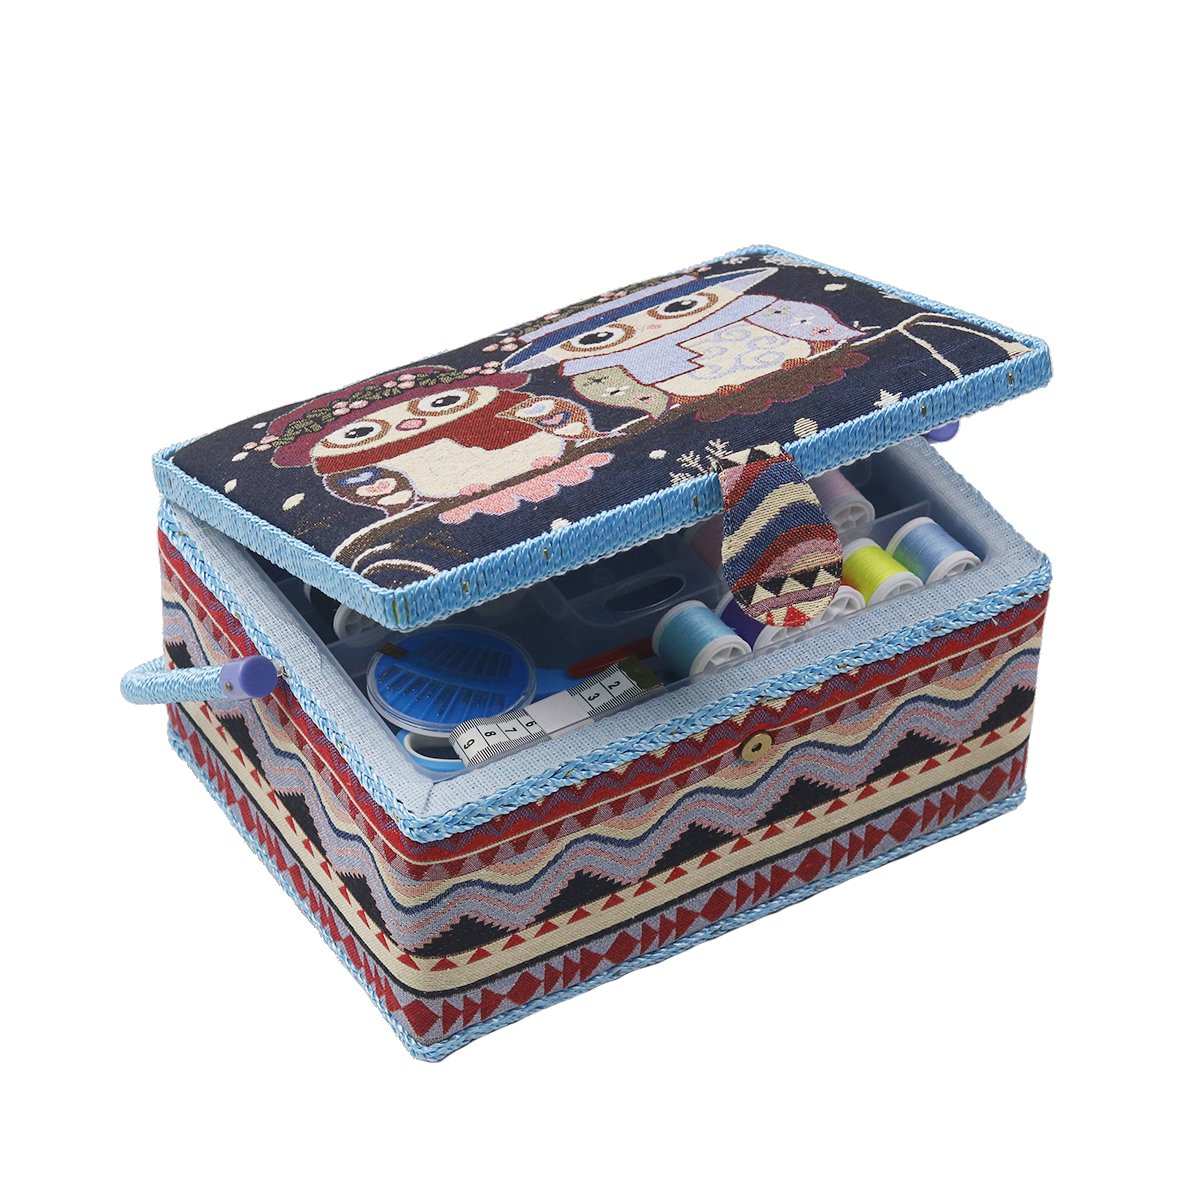 Large Sewing Basket Sewing Box Organizer with Sewing Kit Accessories - Blue - by D&D Design